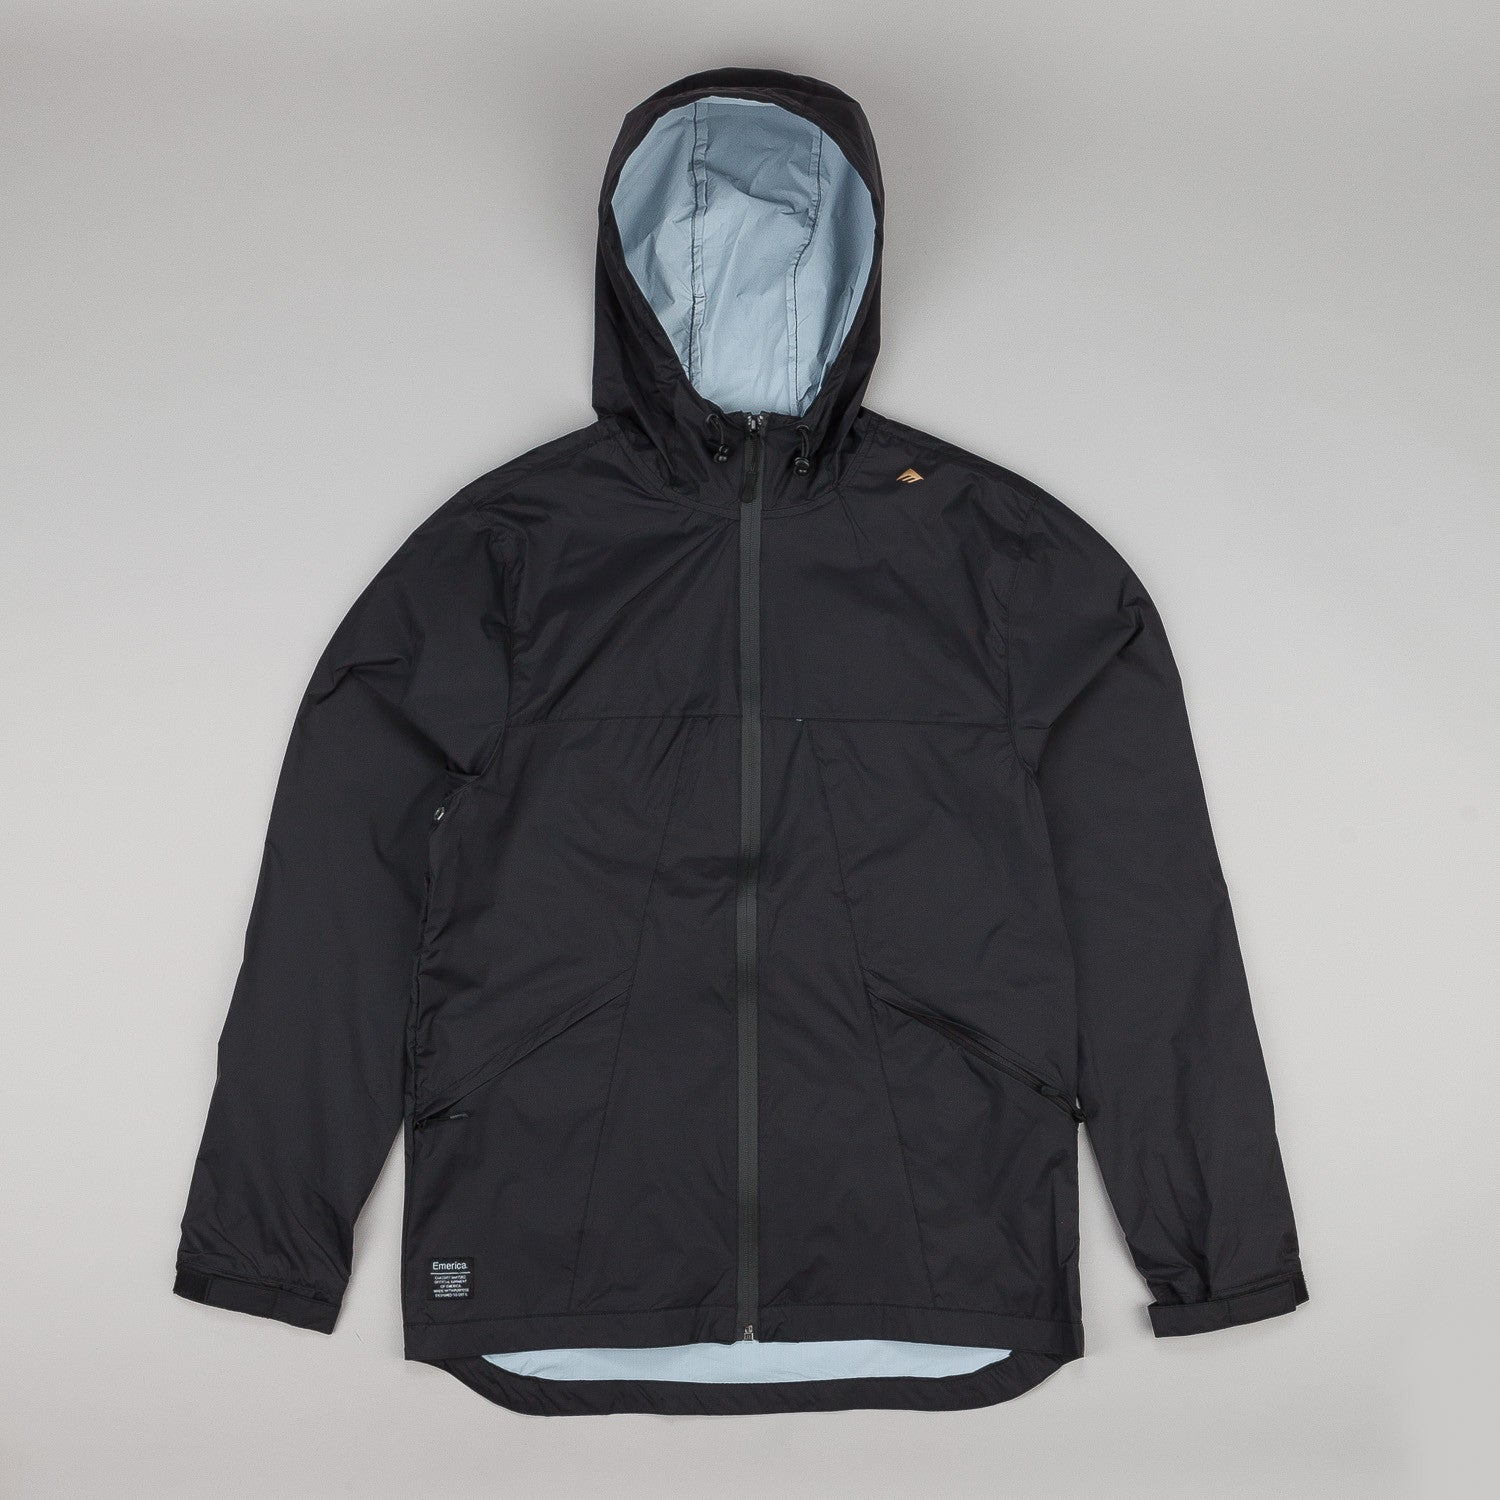 Emerica Skann Windbreaker Jacket